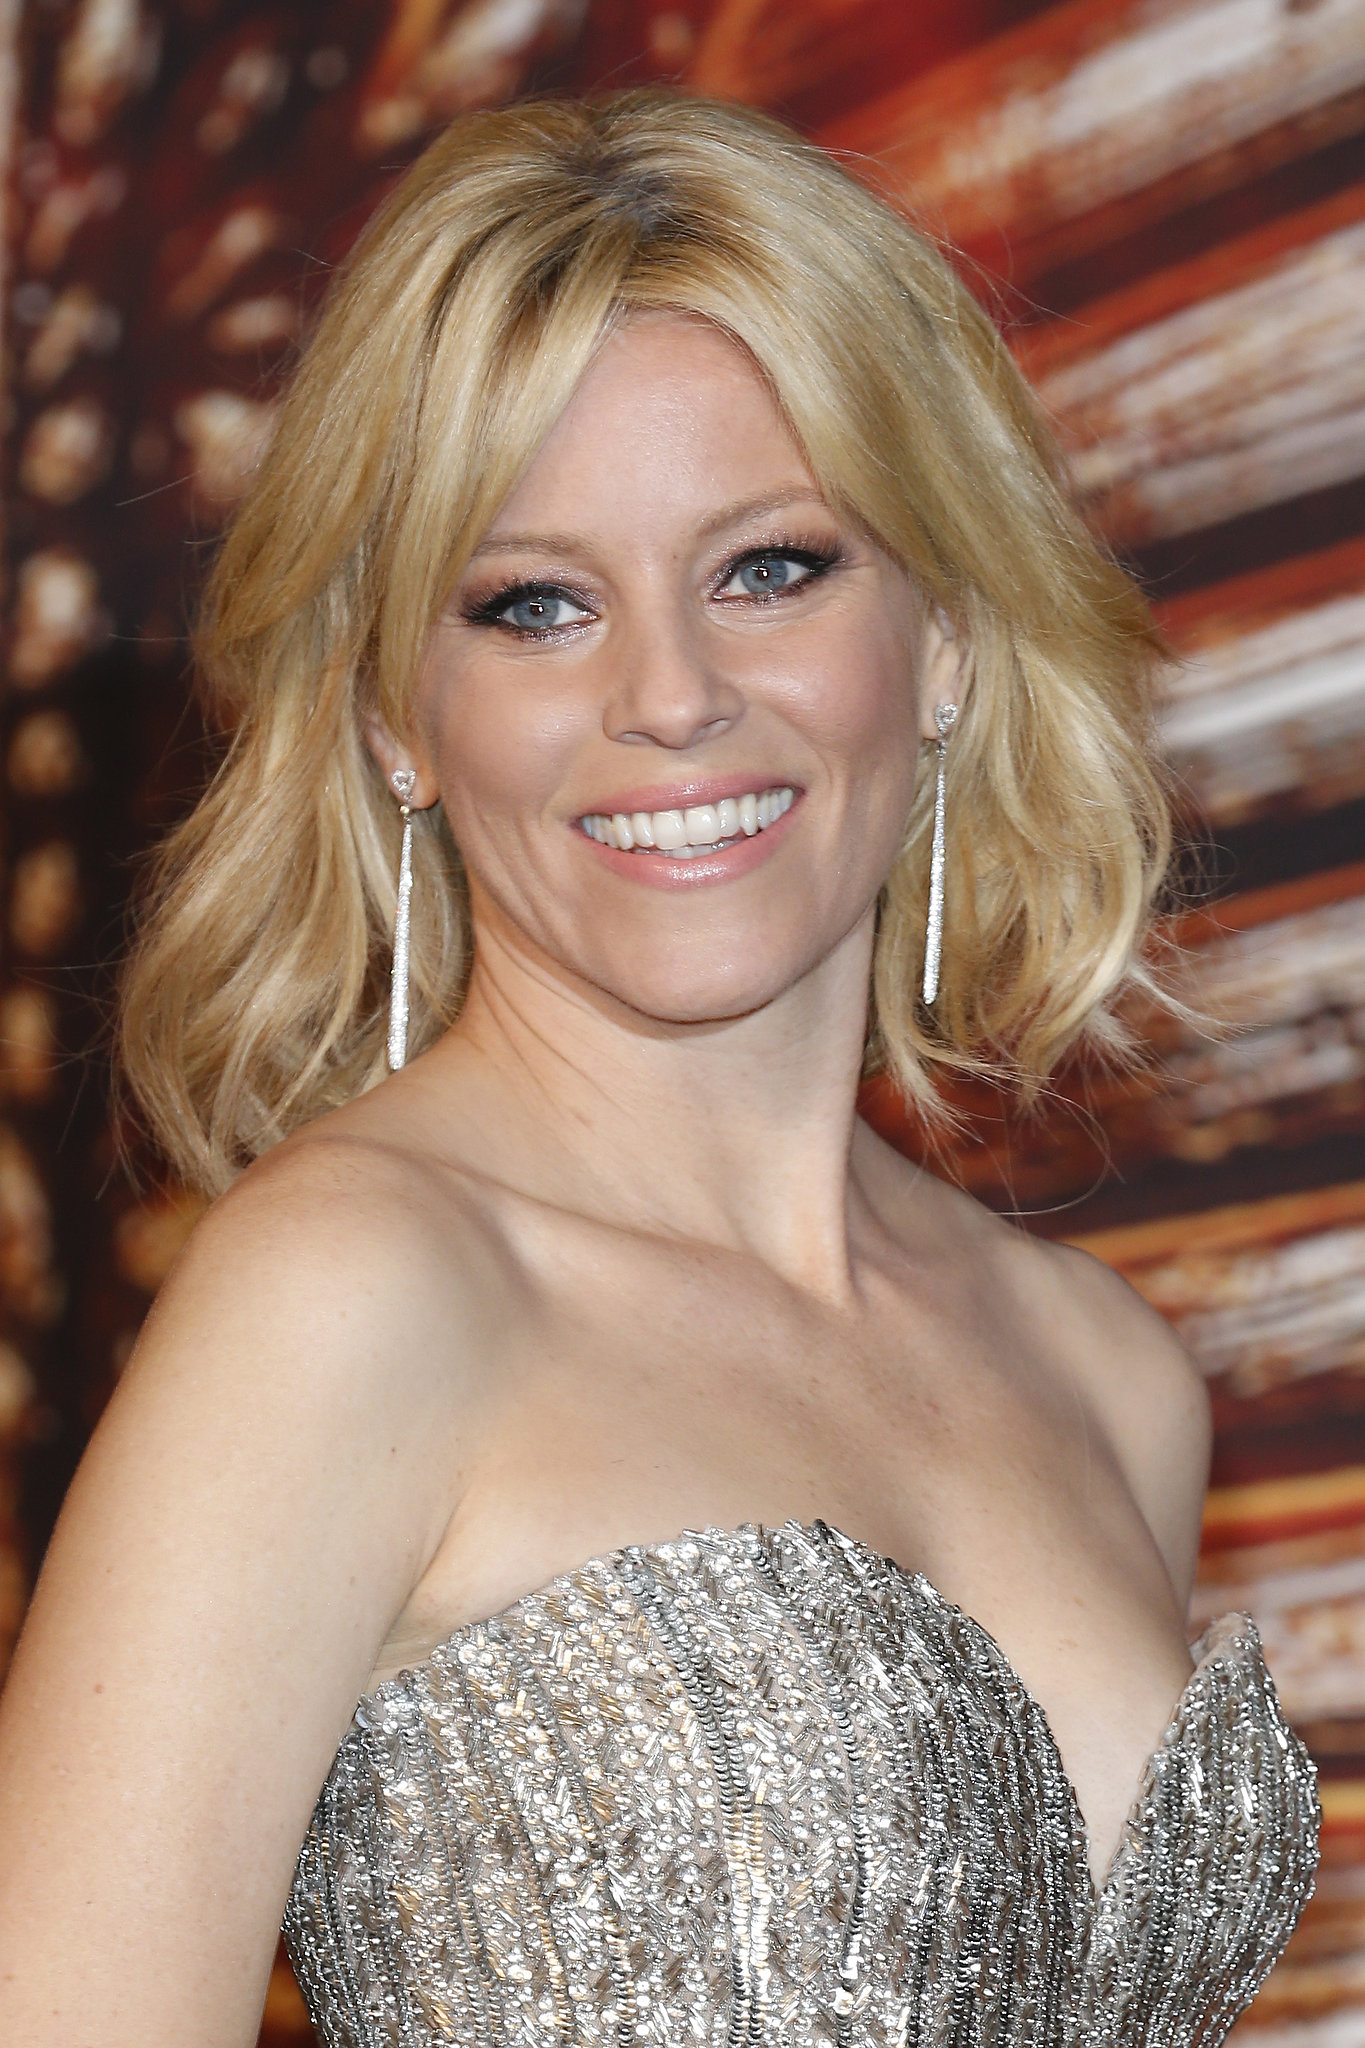 From her beaded gown to her voluminous waves, Elizabeth Banks went full bombshell. She chose a glamorous smoky eye to complete the look.